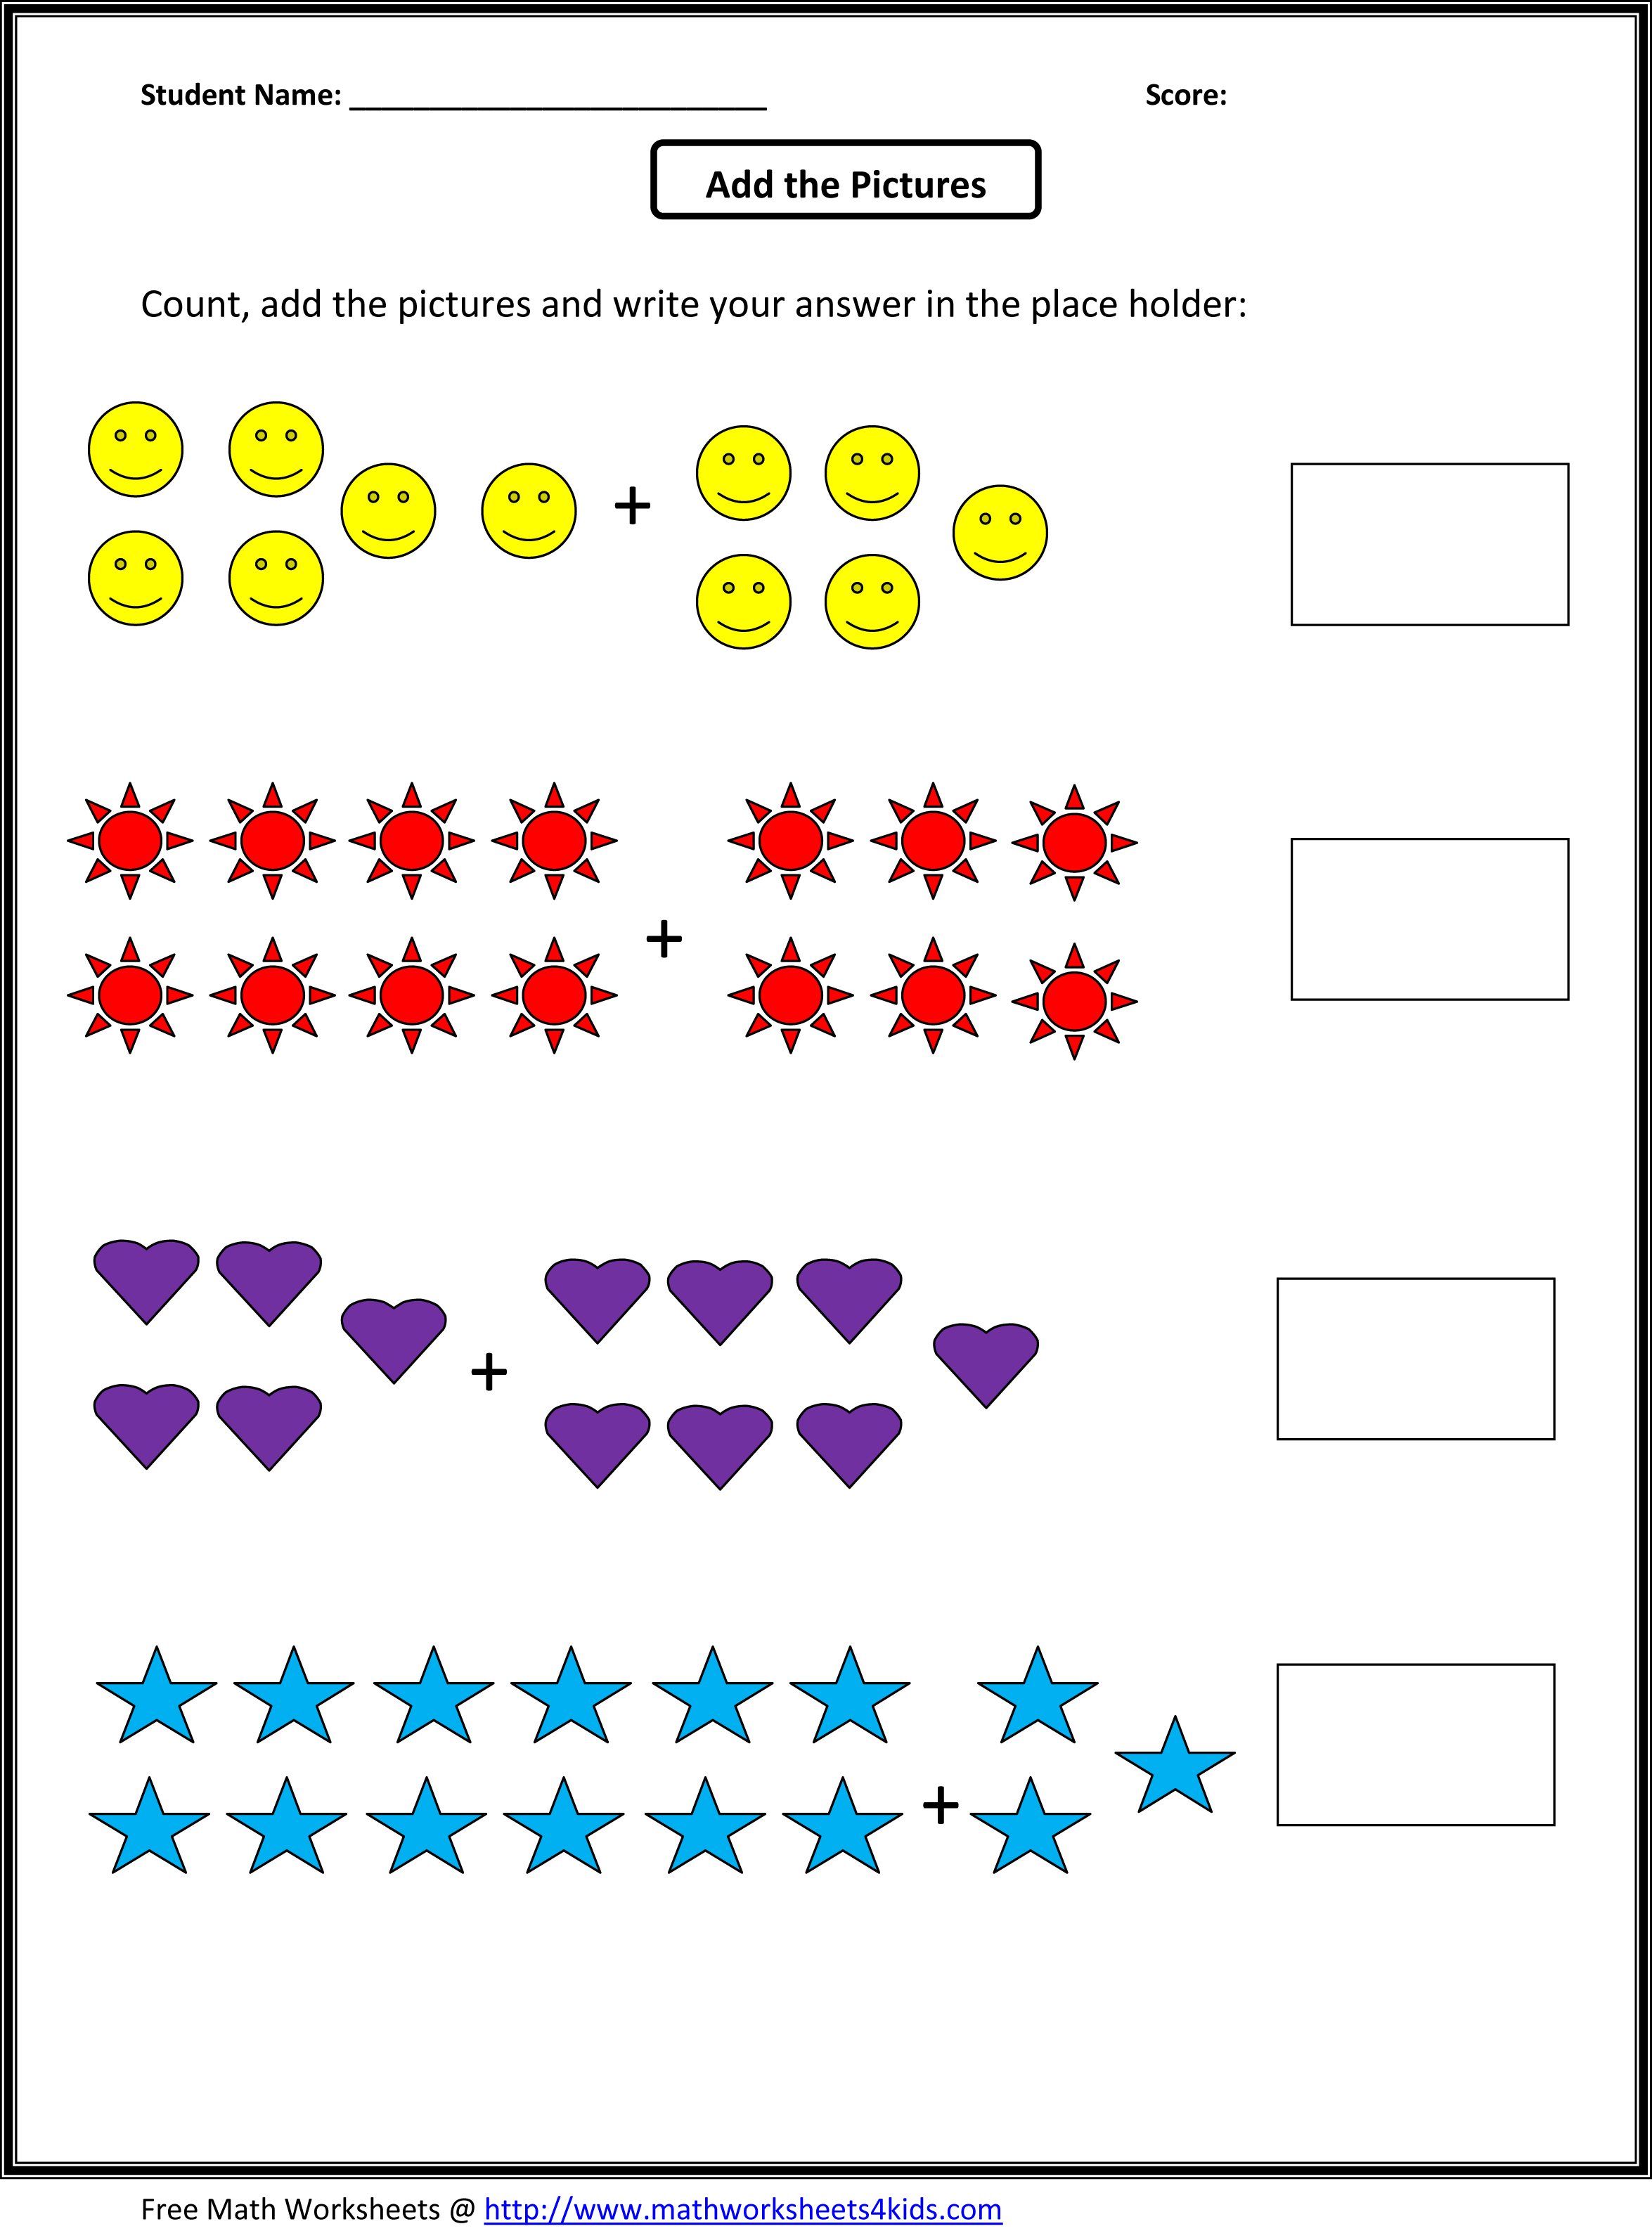 Weirdmailus  Seductive Grade  Maths Worksheet  Reocurent With Glamorous Math Worksheets For St Grade Free  Reocurent With Divine Adjectives Worksheet For Grade  Also Math Greater Than Less Than Worksheet In Addition Note Worksheets And Year  Percentages Worksheet As Well As Months And Seasons Worksheets Additionally Transitive And Intransitive Verb Worksheet From Reocurentcom With Weirdmailus  Glamorous Grade  Maths Worksheet  Reocurent With Divine Math Worksheets For St Grade Free  Reocurent And Seductive Adjectives Worksheet For Grade  Also Math Greater Than Less Than Worksheet In Addition Note Worksheets From Reocurentcom